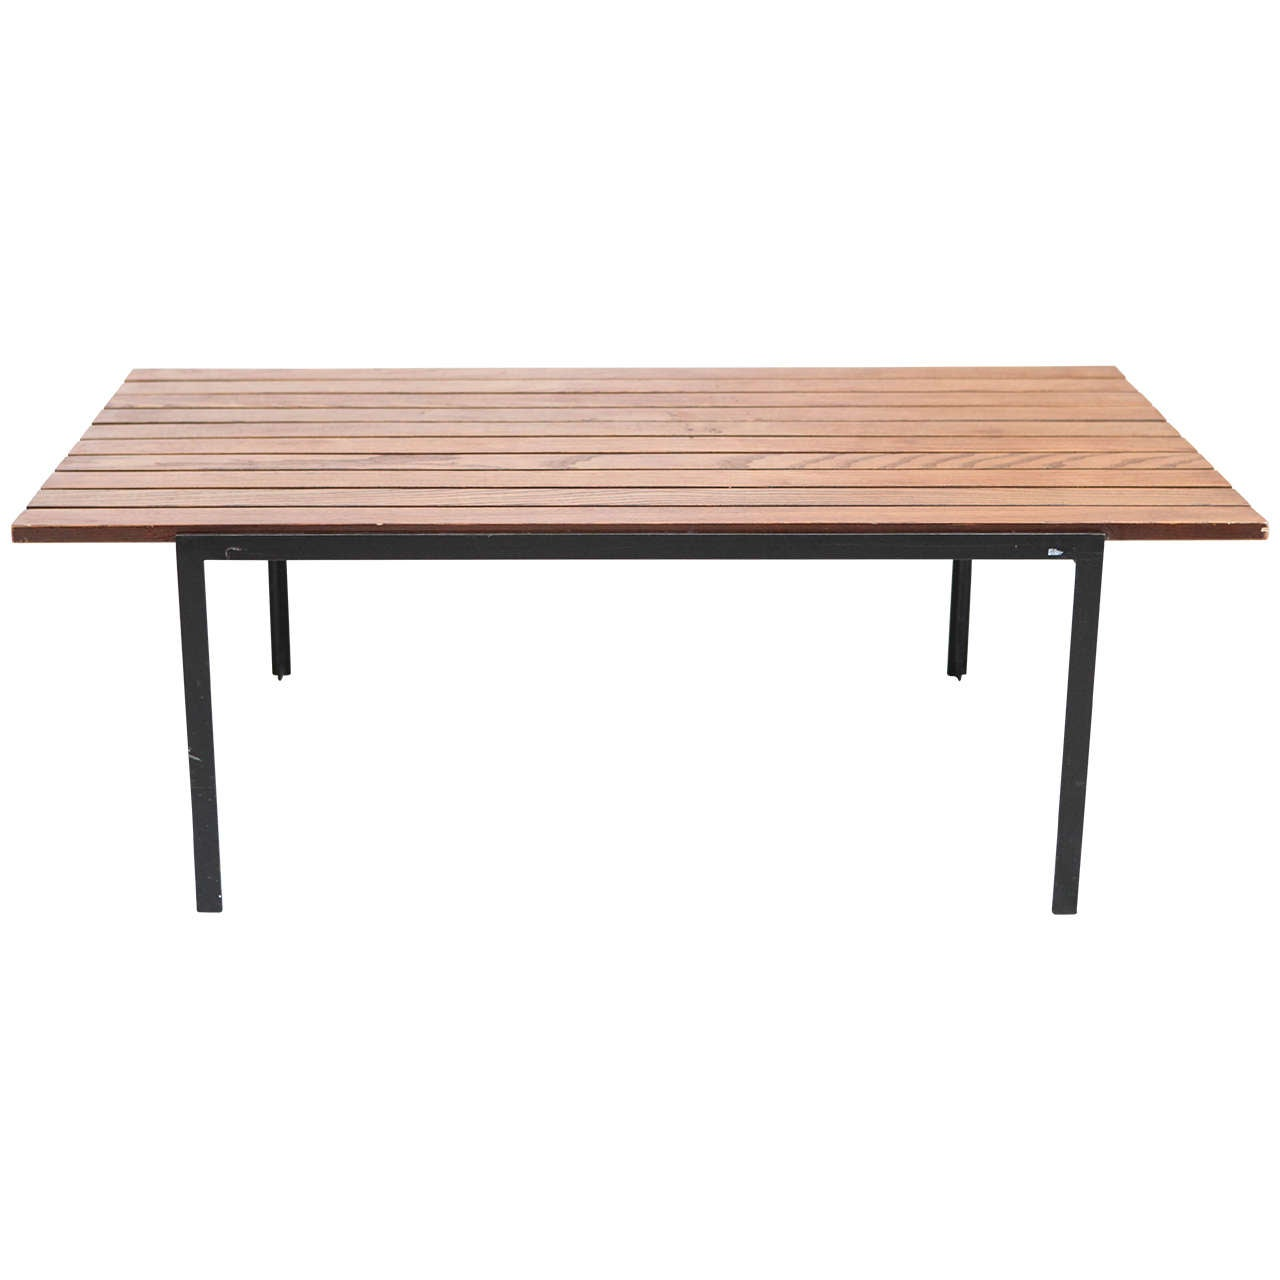 Slatted Wood Coffee Table By Florence Knoll At 1stdibs